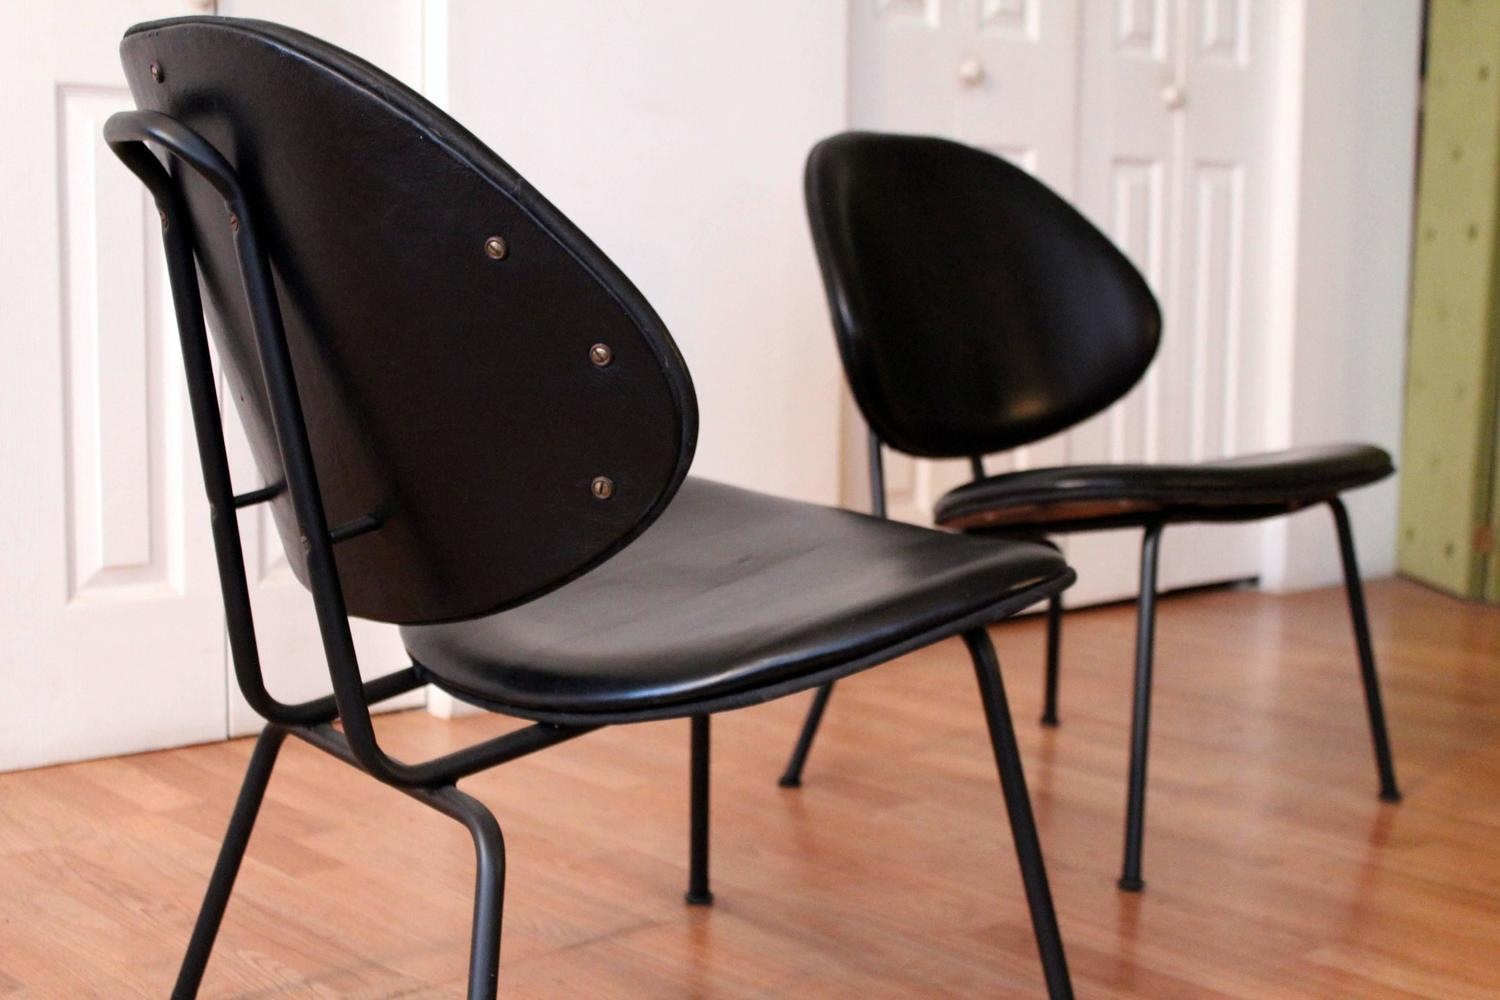 clam shell chair camping lounge homecrest black leather chairs for sale